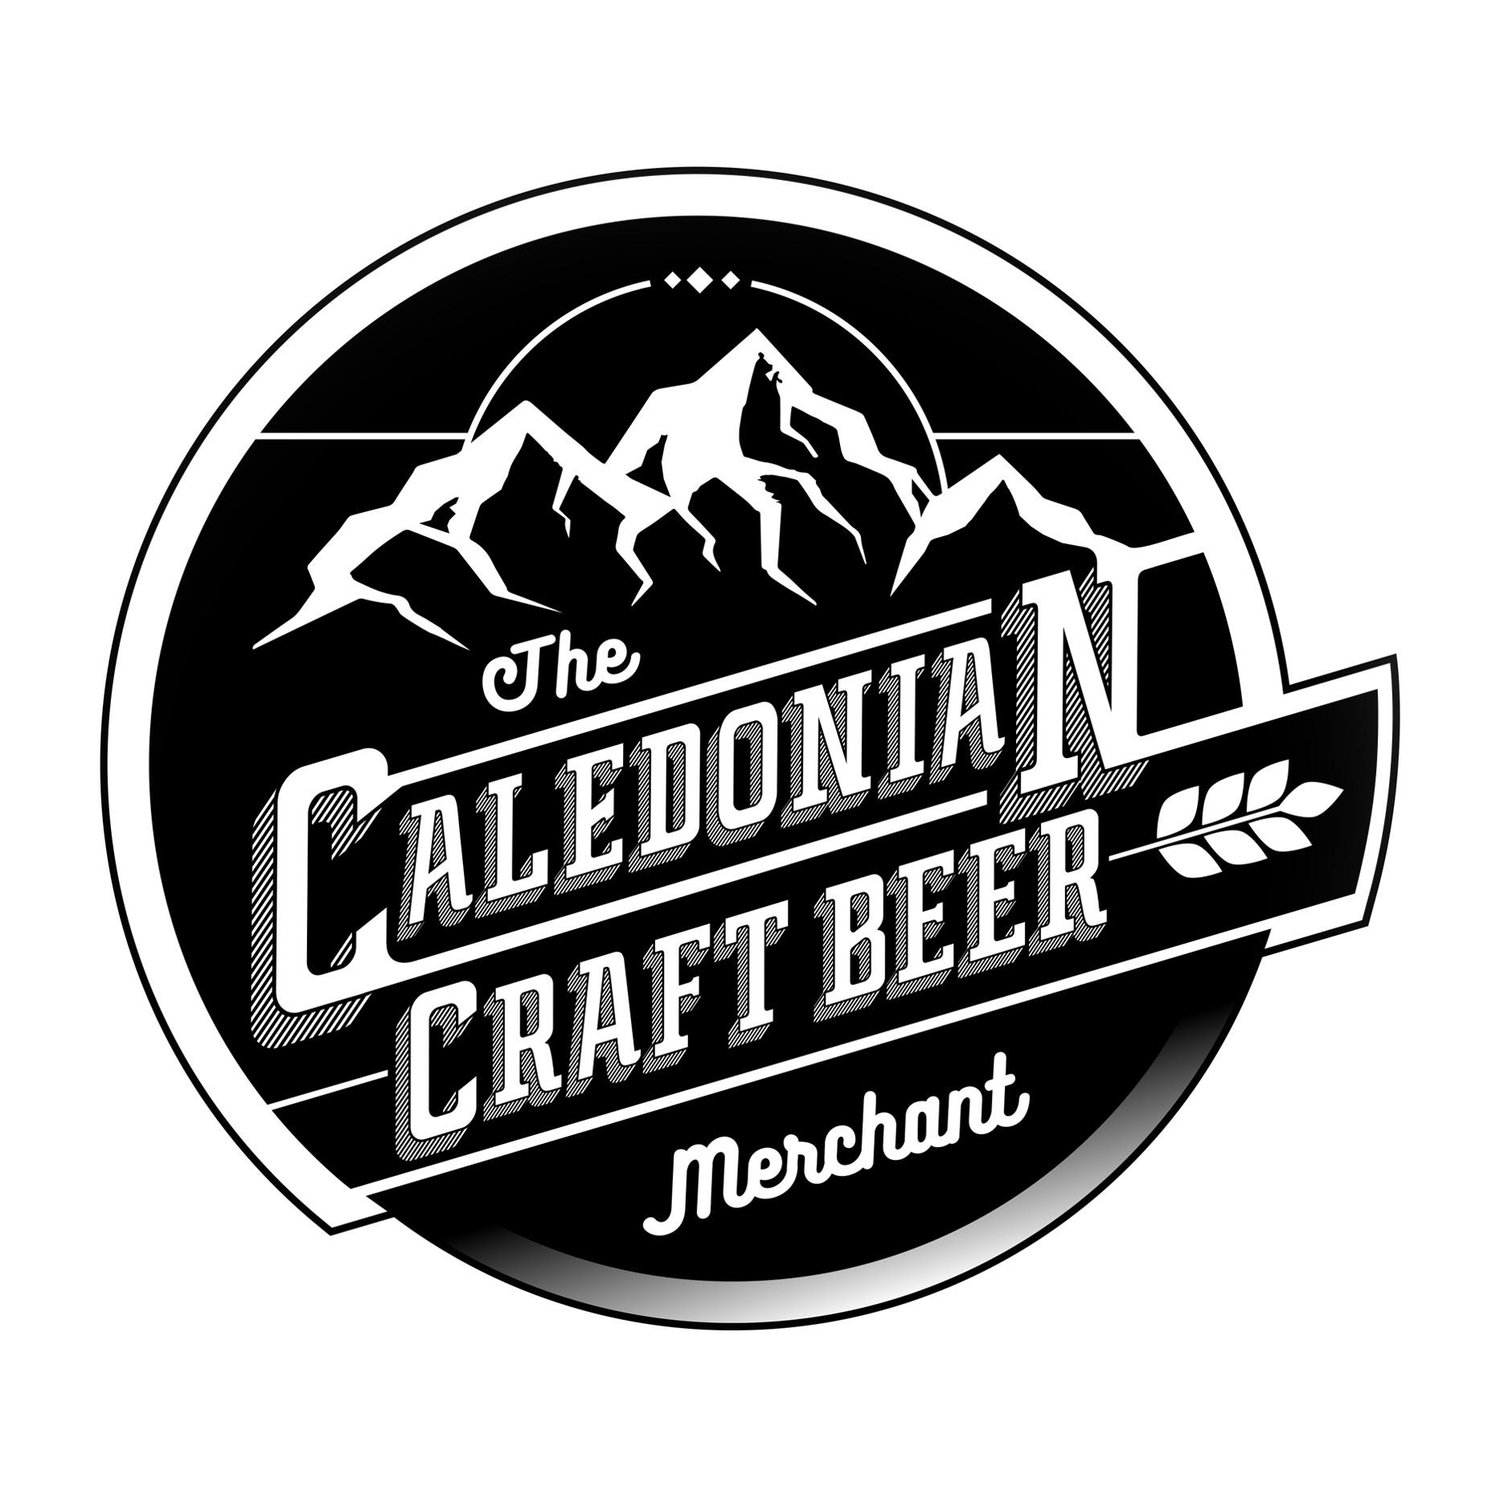 The Caledonian craft beer merchant